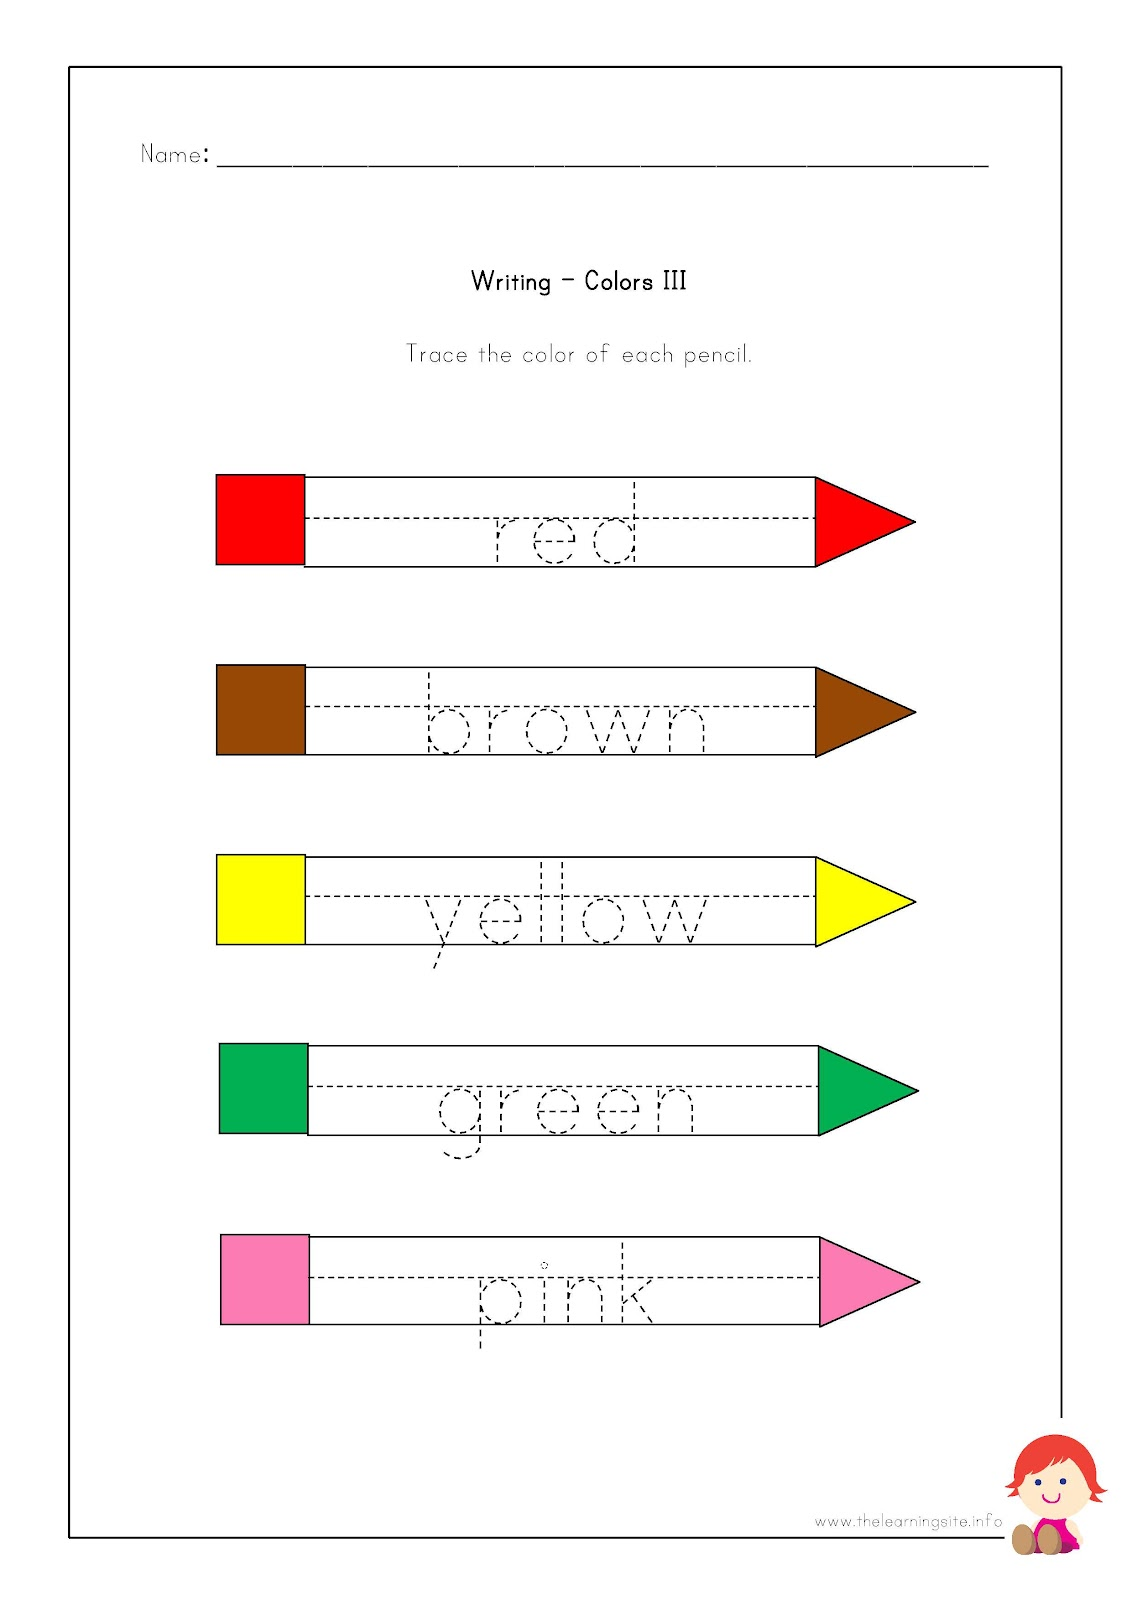 color essay essay help live chat this page is the most comprehensive list of color symbolism on the internet